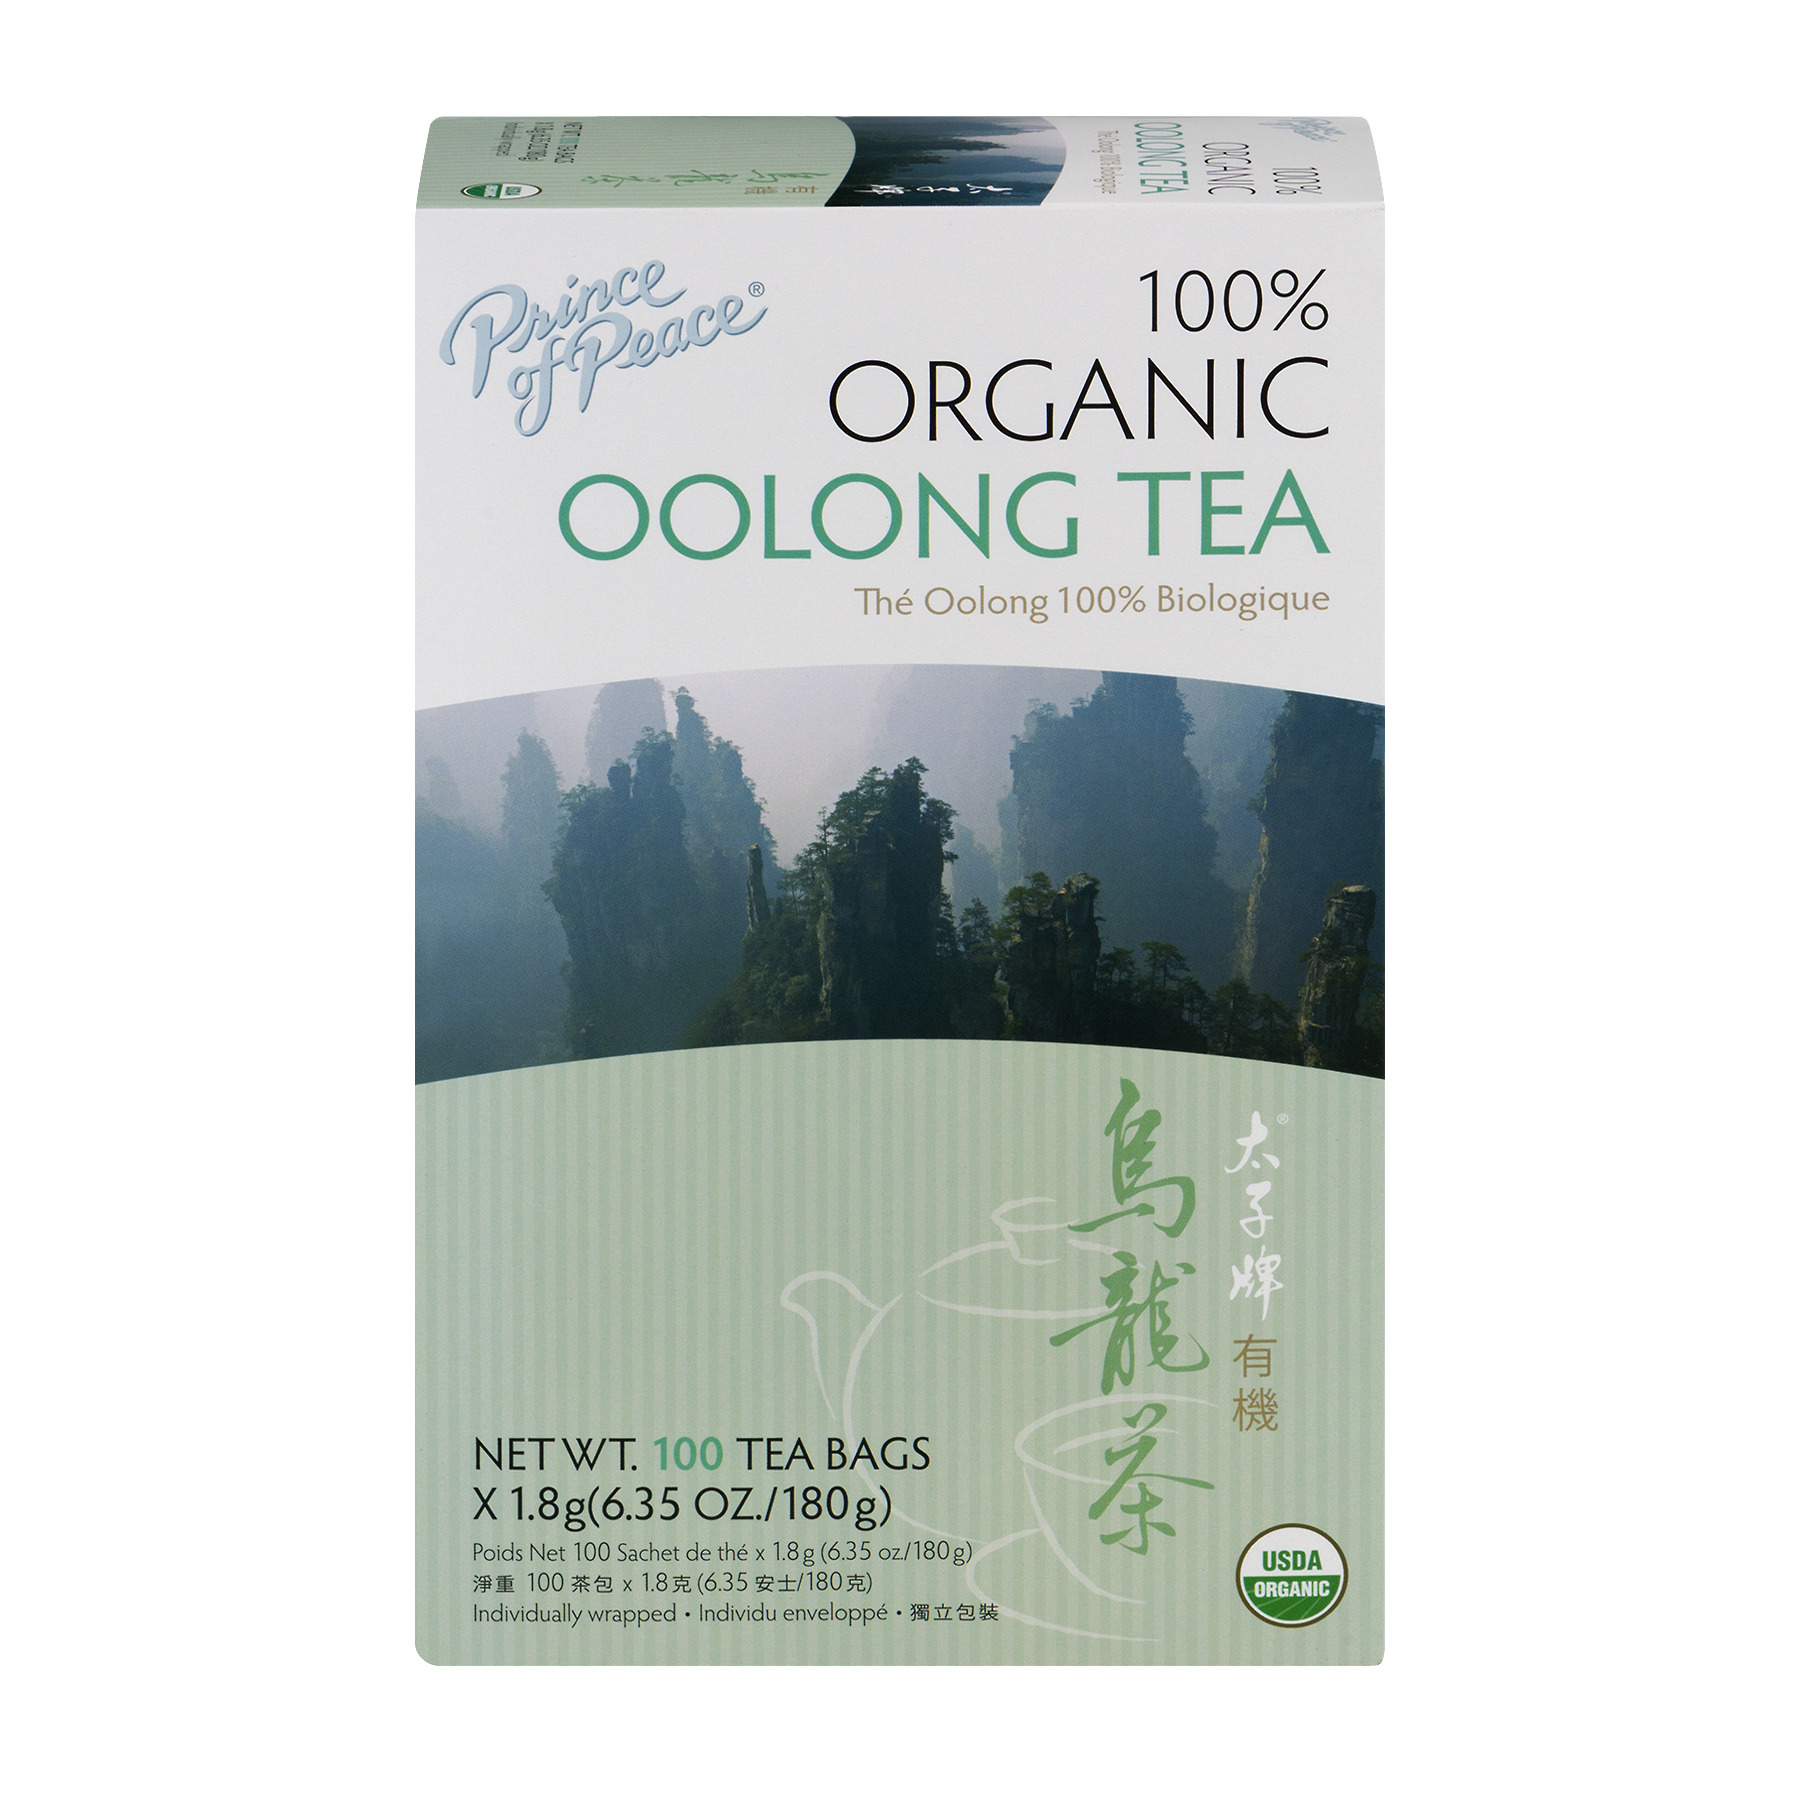 Prince Of Peace 100% Organic Oolong Tea Bags - 100 CT100.0 CT